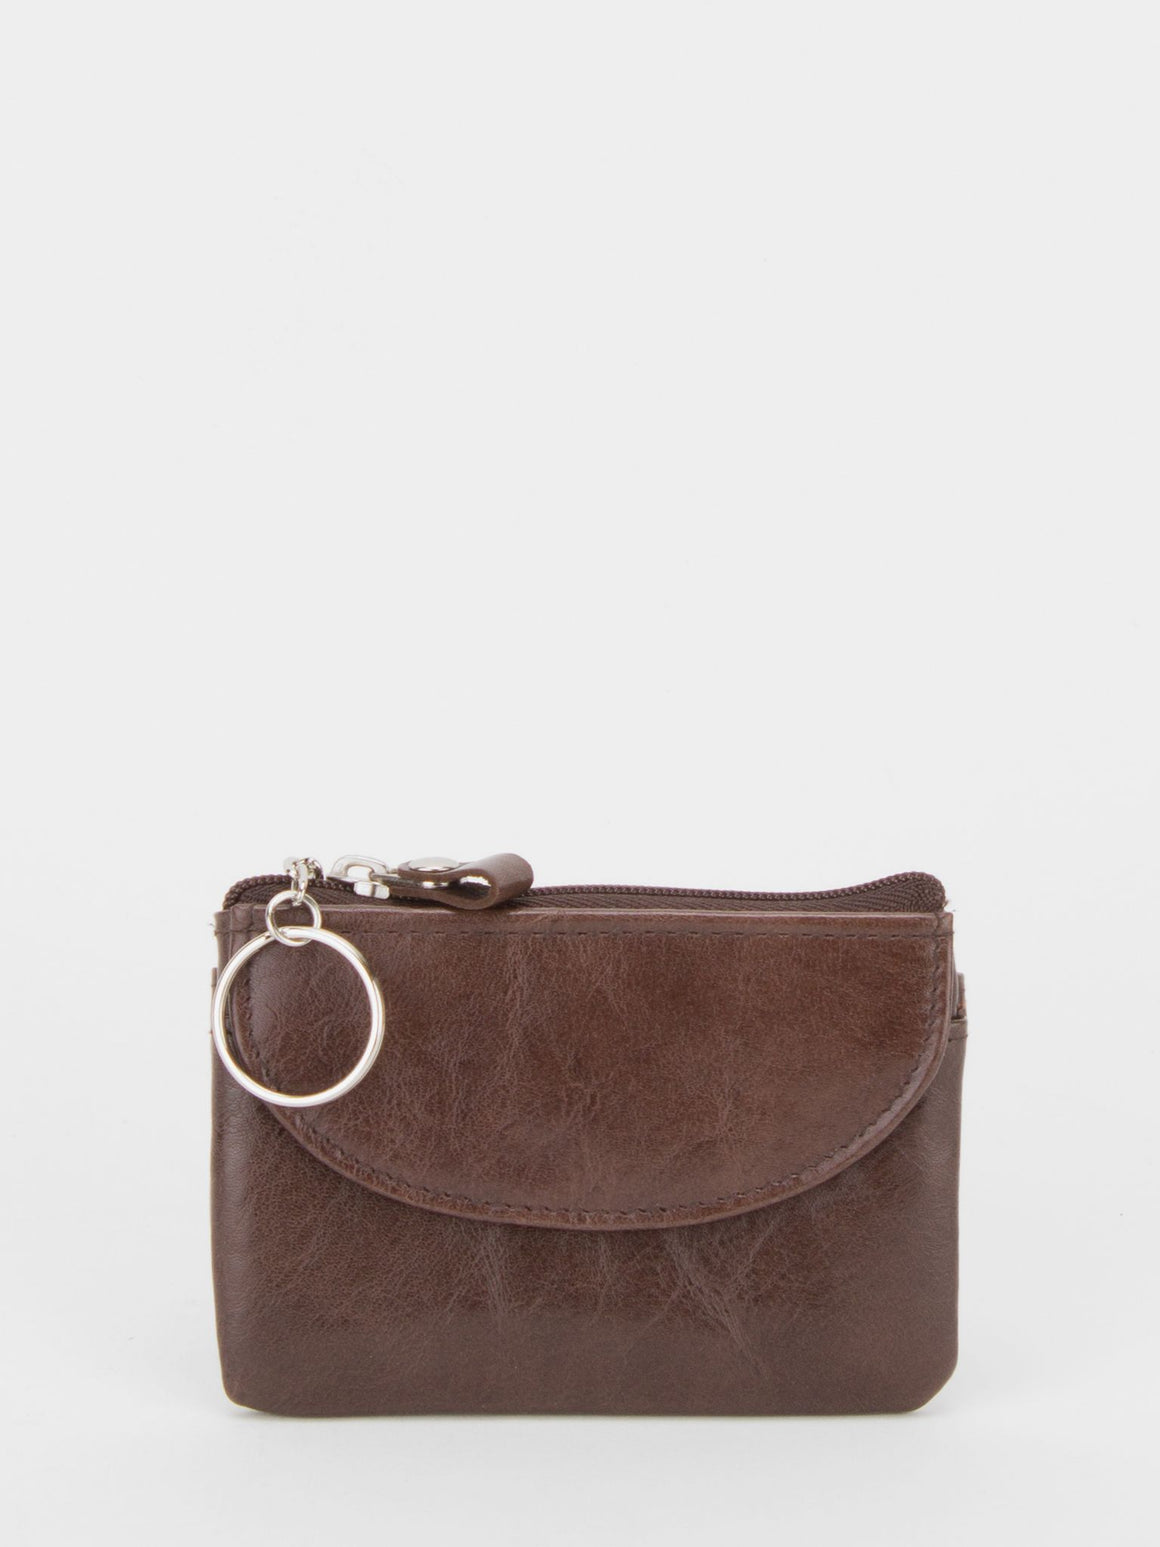 Heather Glazed Leather Change Purse - Brown